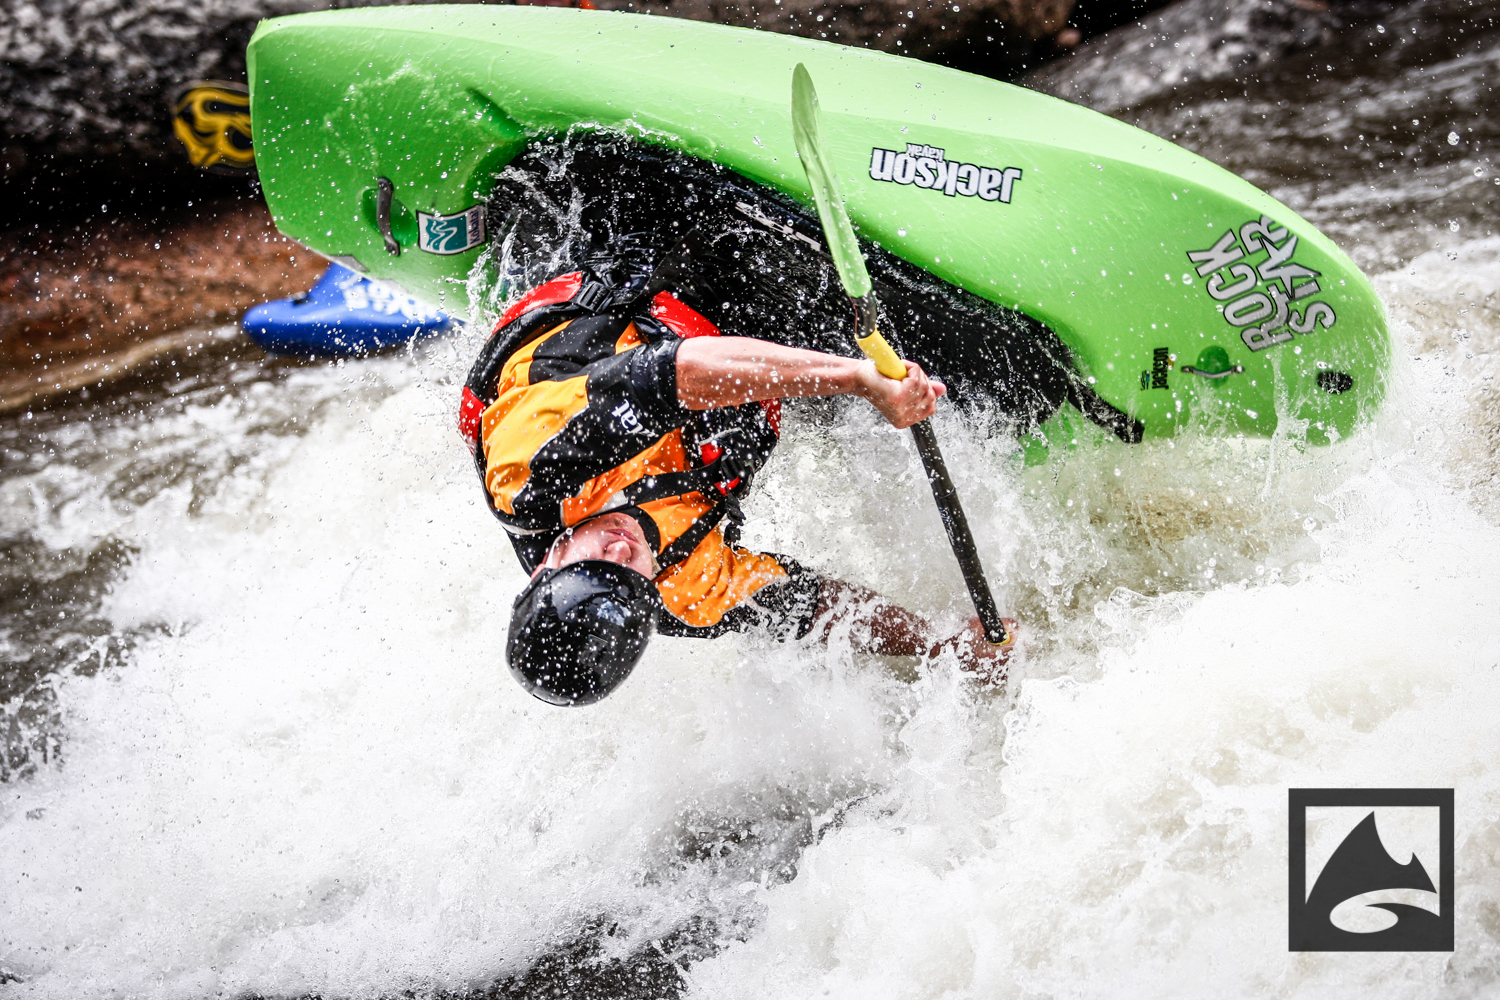 The Kayak Freestyle competition is a staple at the GoPro Mountain Games, and this year's battle went down at the Vail Whitewater Park. Each kayaker had a timed run to show off his best cartwheels, loops, phonics monkeys, space godzillas and other wild tricks to impress the judges.